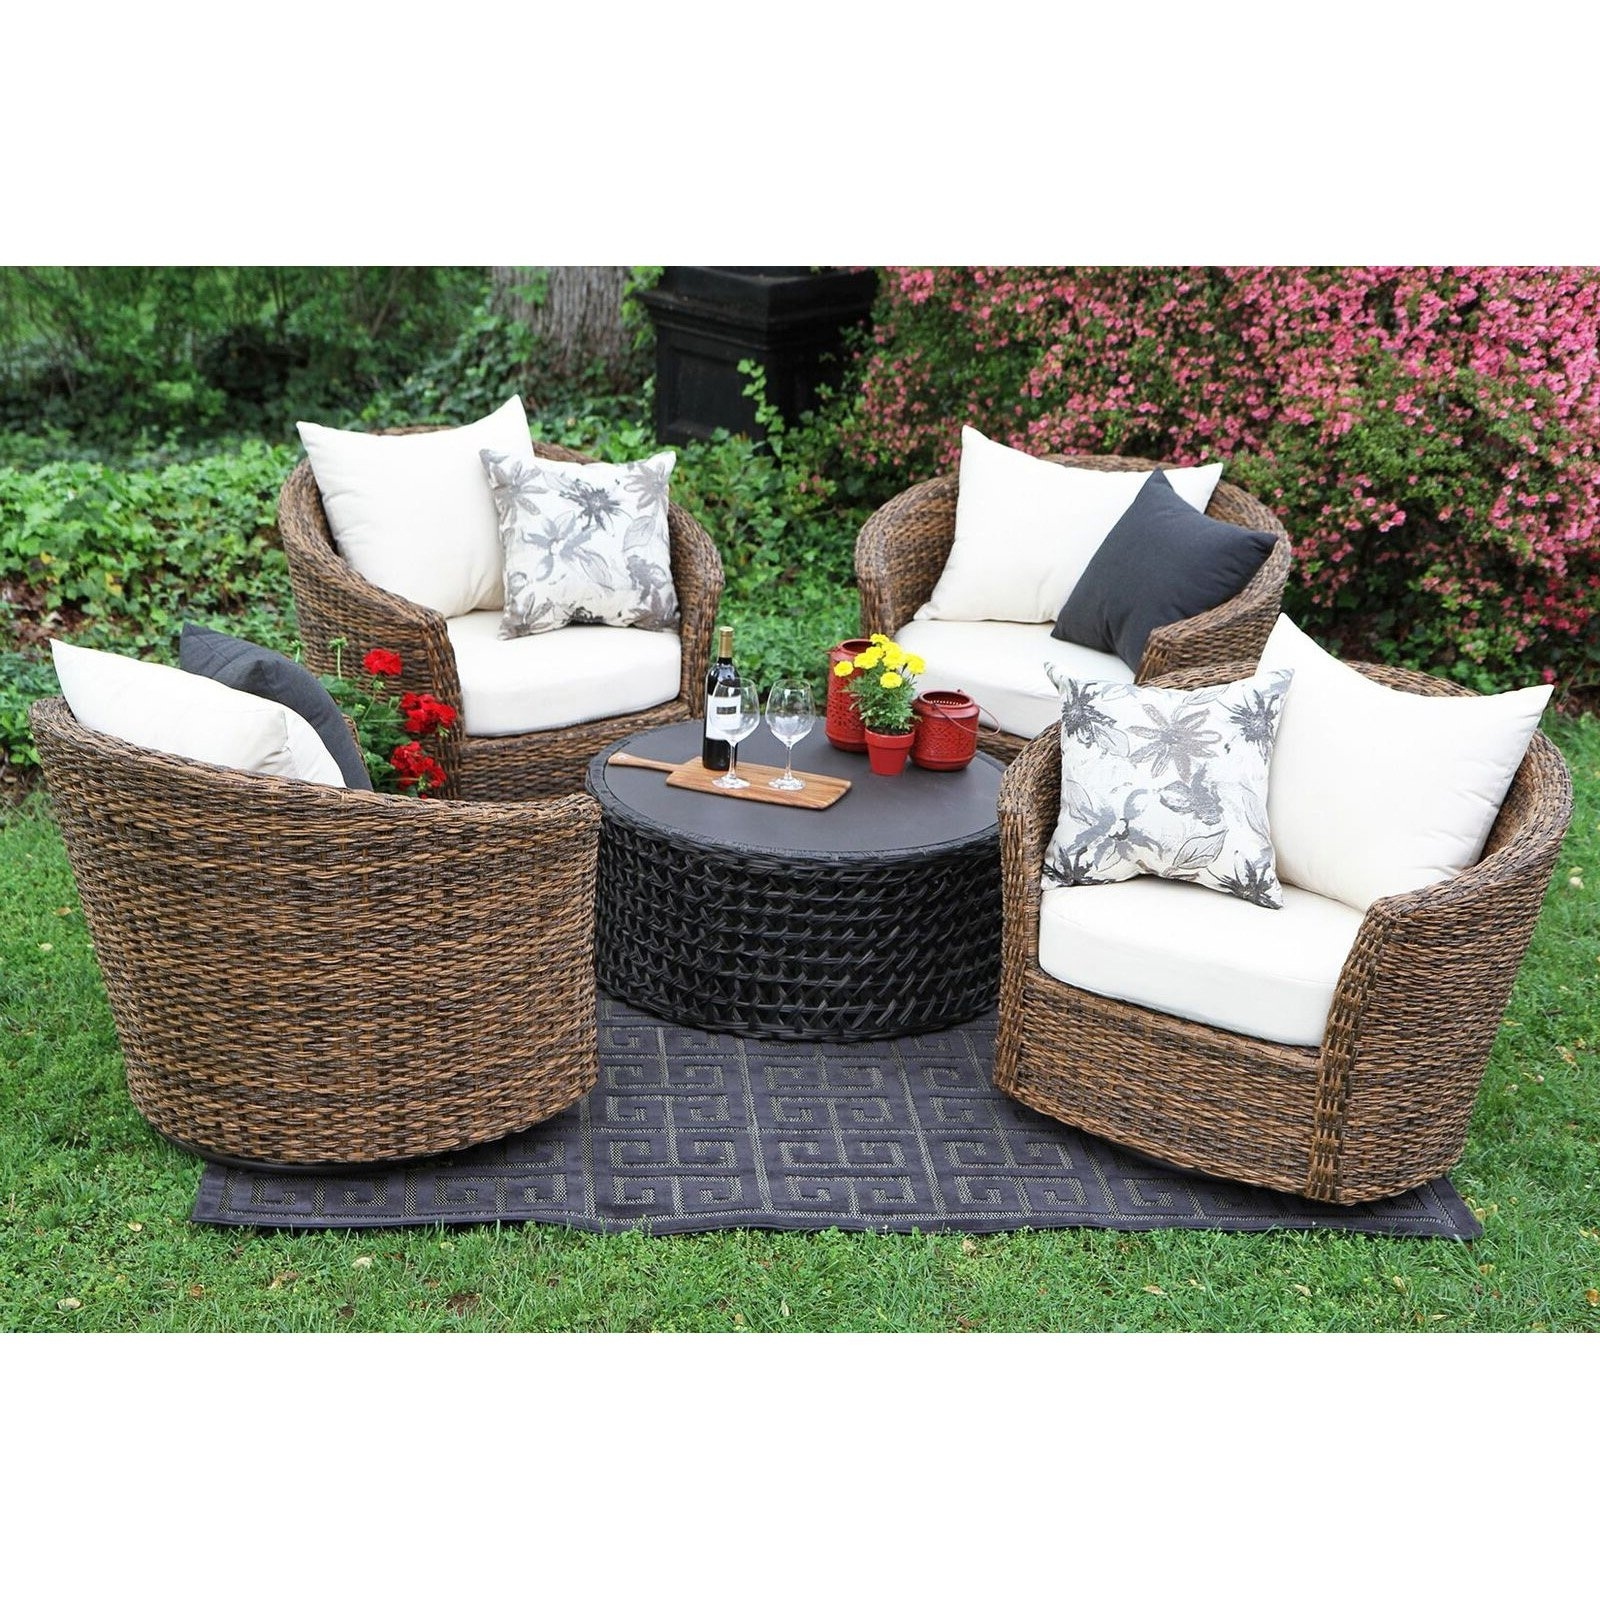 Patio : Kroger Patio Furniture Kroger Outdoor Furniture Intended For Favorite Hayneedle Patio Conversation Sets (View 11 of 20)